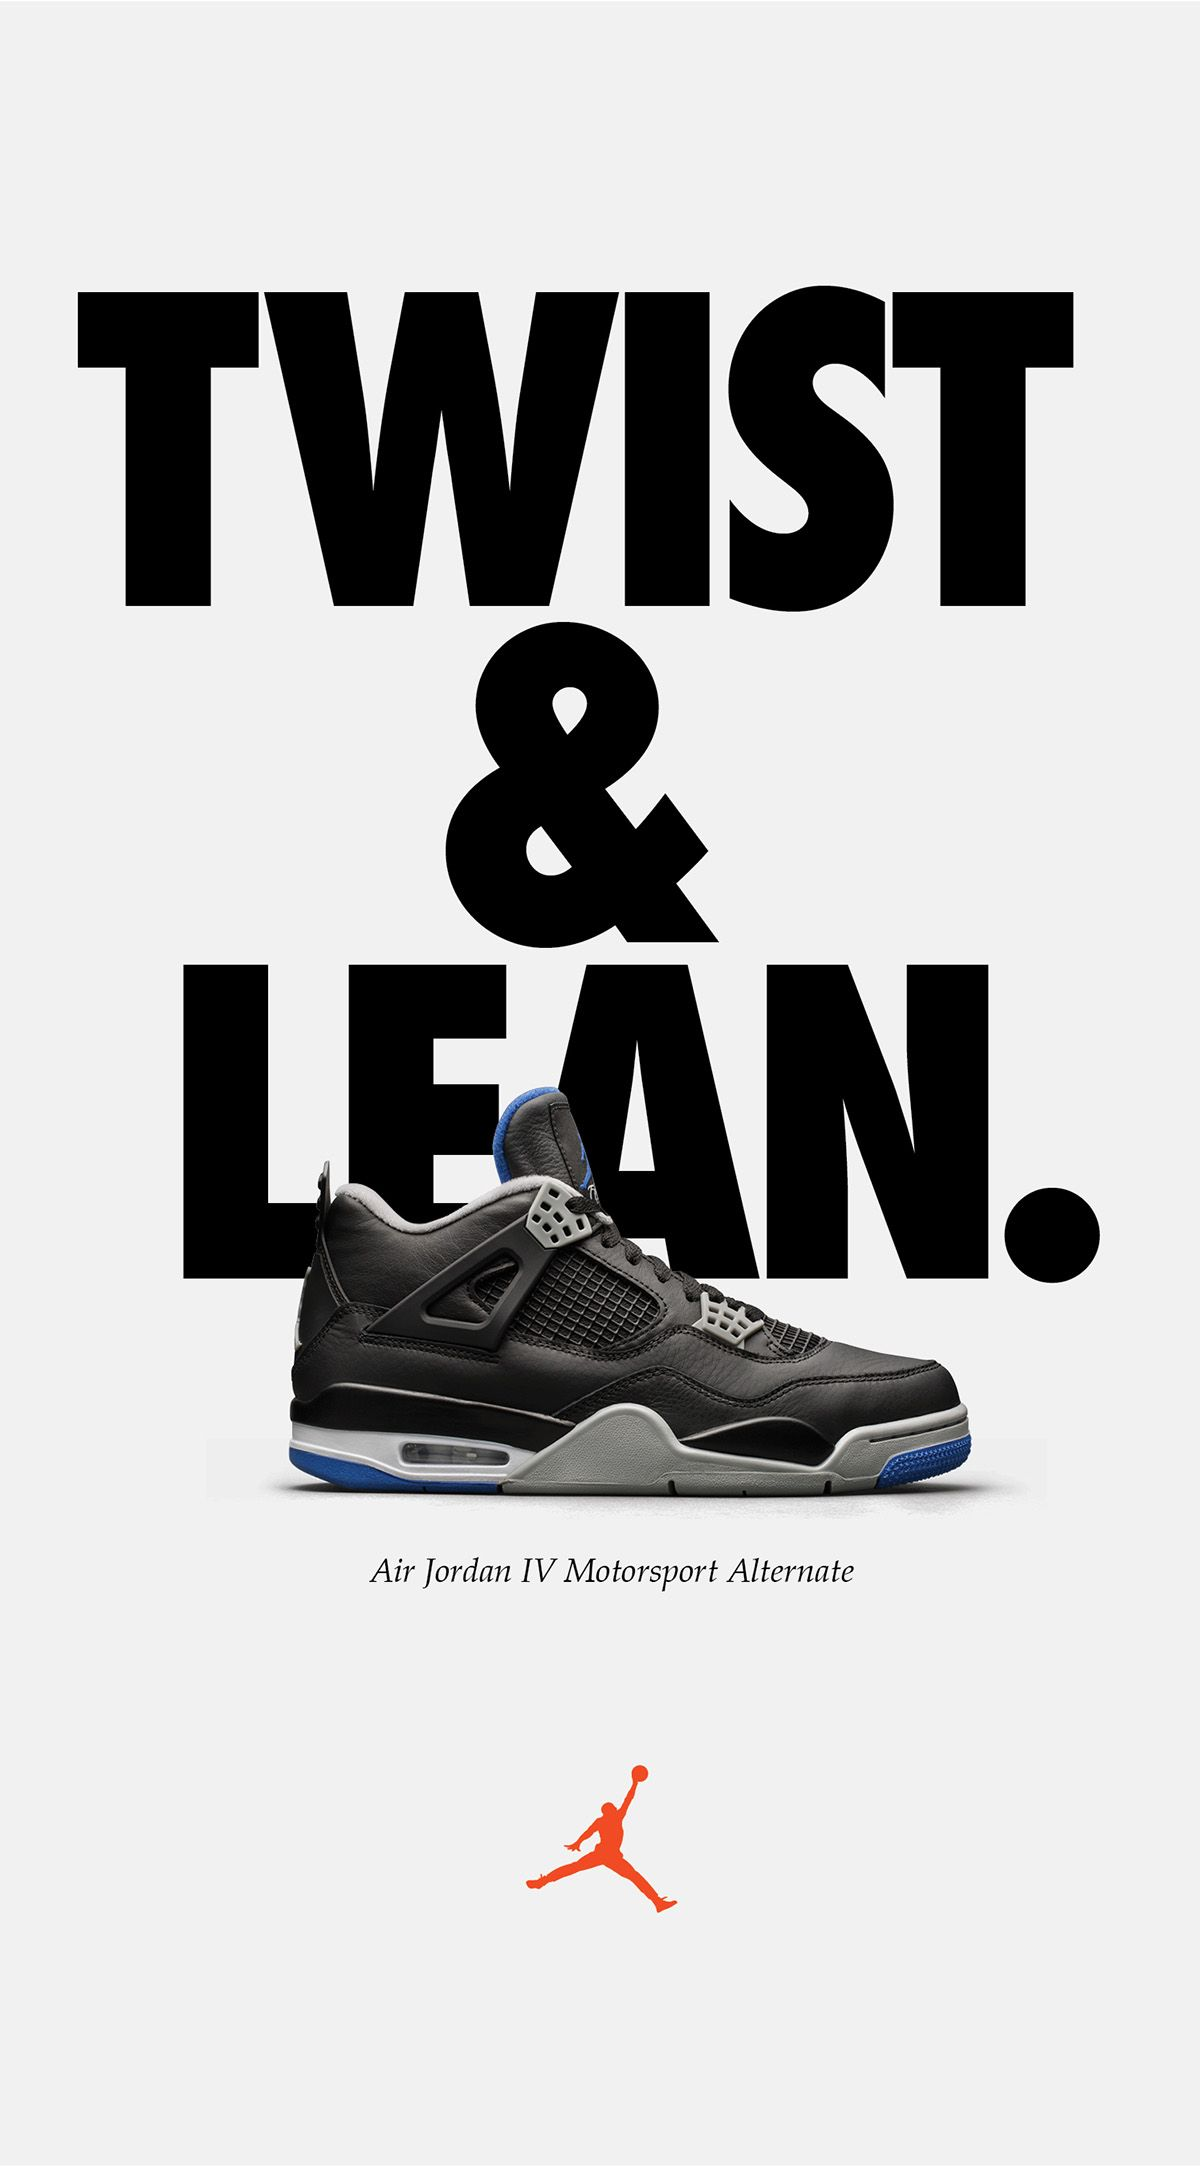 779c53955a5ba7 Preview  Air Jordan 4 Retro  Alternate Motorsport  - EU Kicks  Sneaker  Magazine